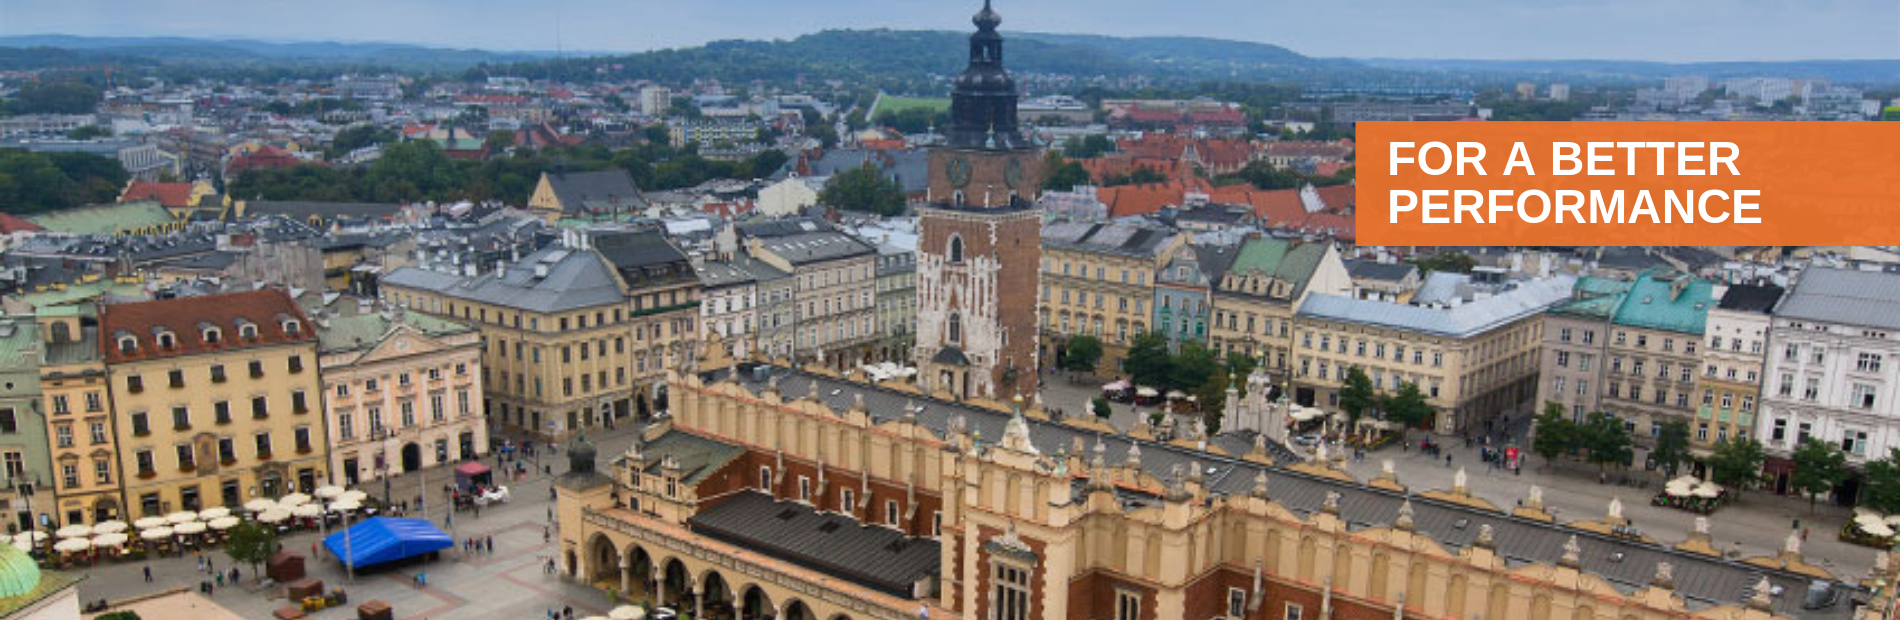 ATALIAN Global Services is present in Poland